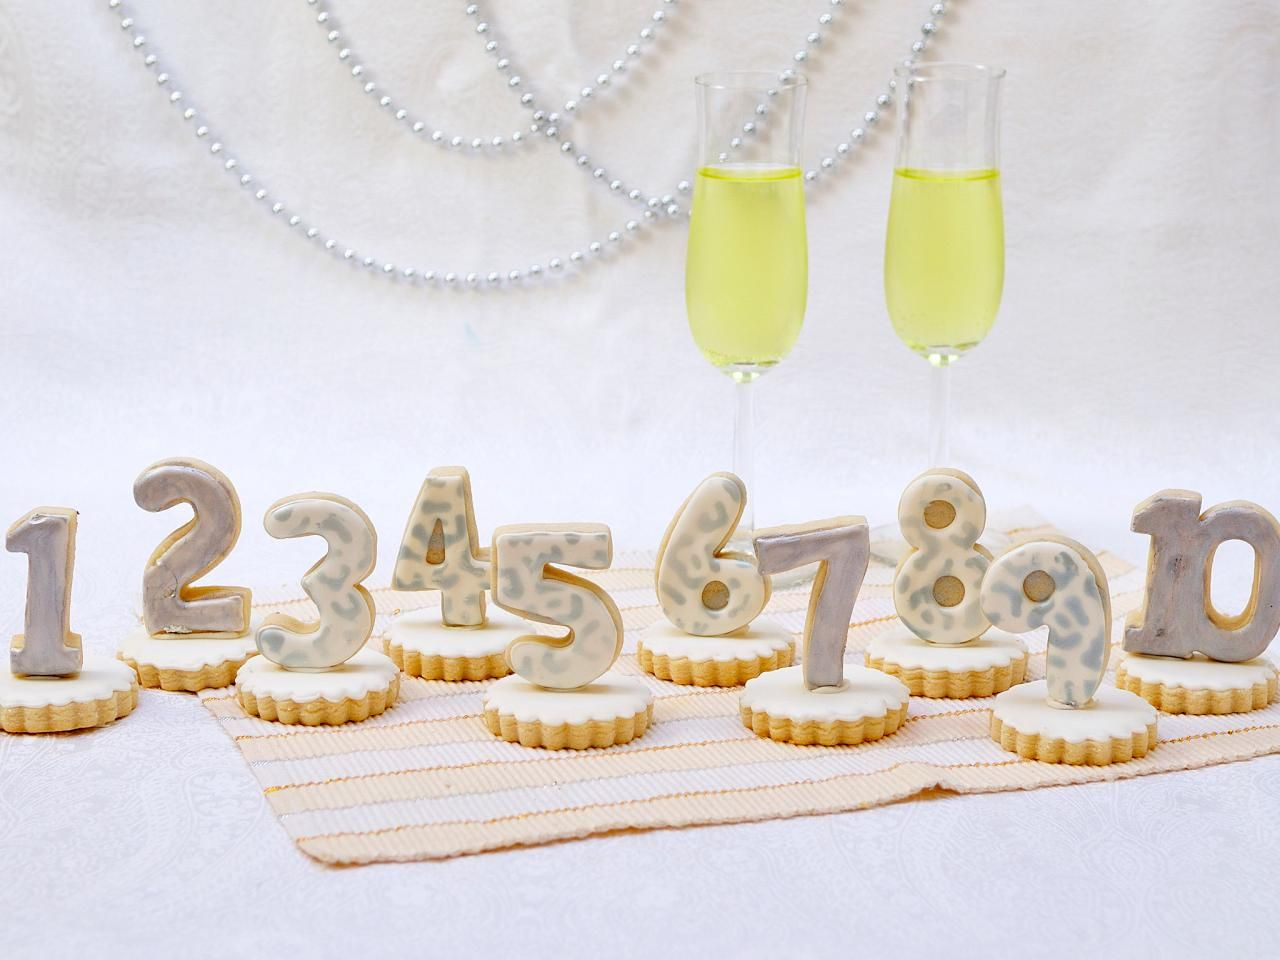 New Year's Eve Cookie Centerpiece and Favors | New years ...